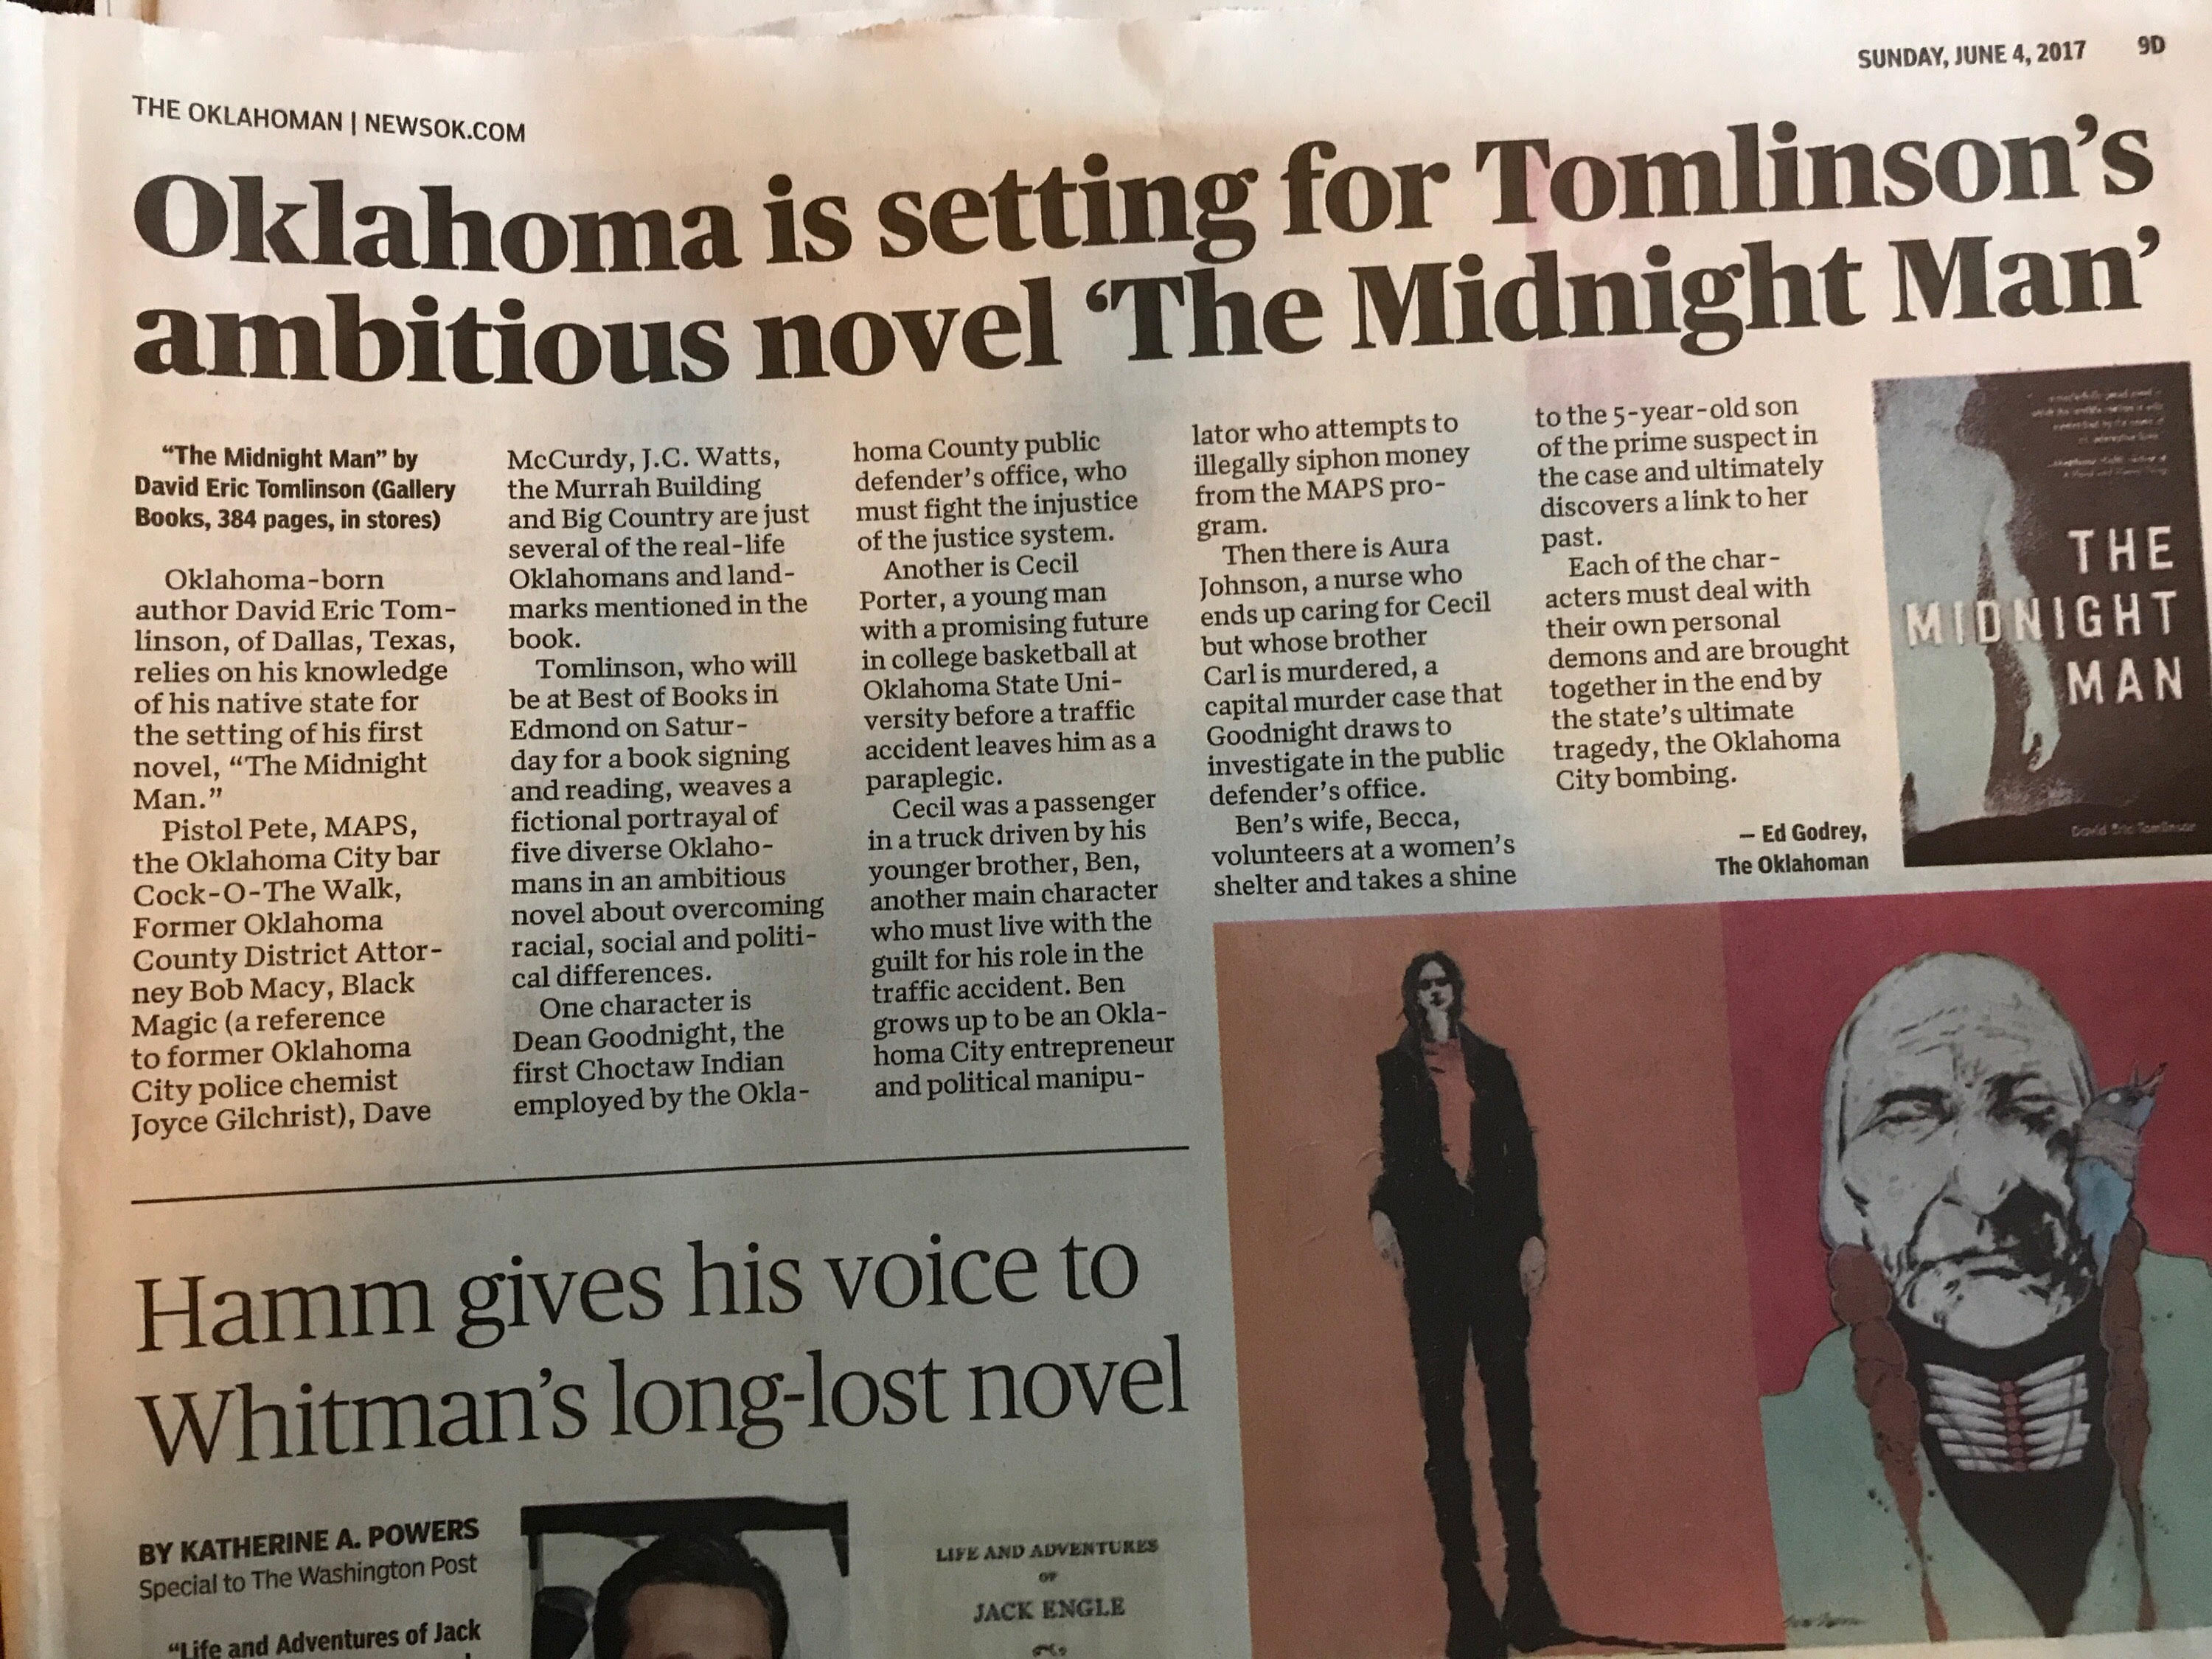 The Oklahoman Reviews THE MIDNIGHT MAN